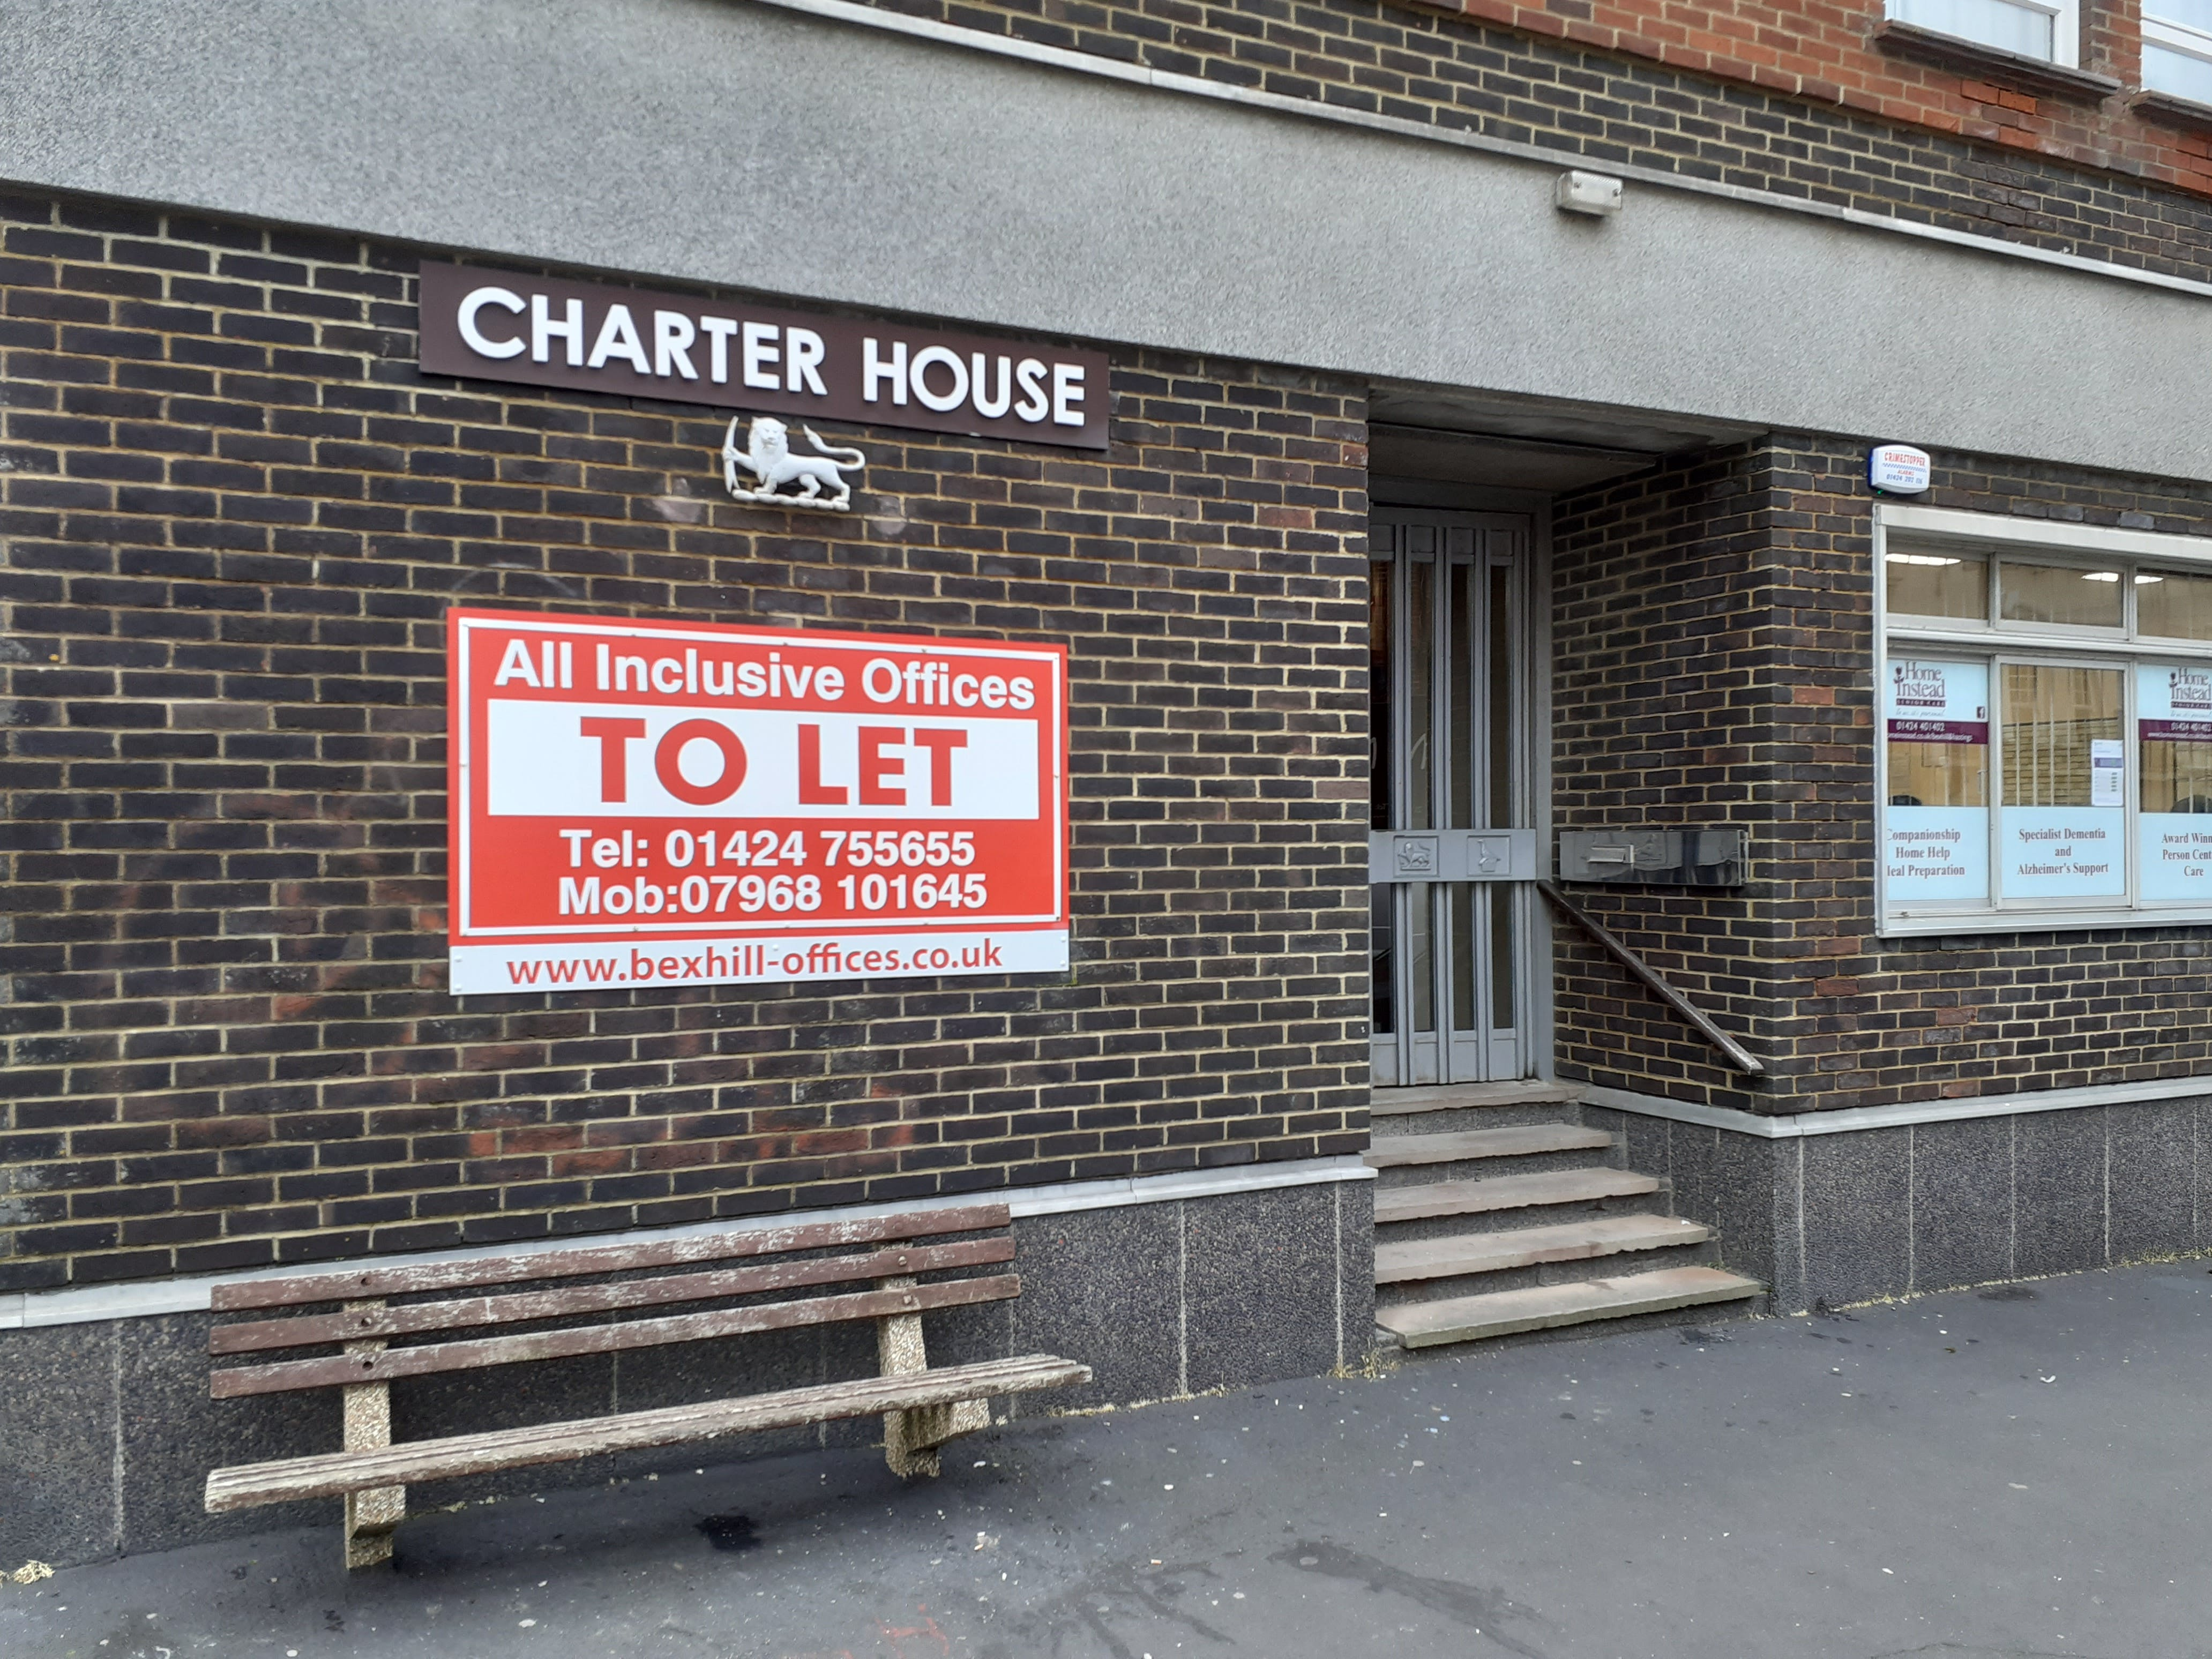 Charter House, 43 St Leonards Road, Bexhill On Sea, Office To Let - Photo12Landscape.jpg